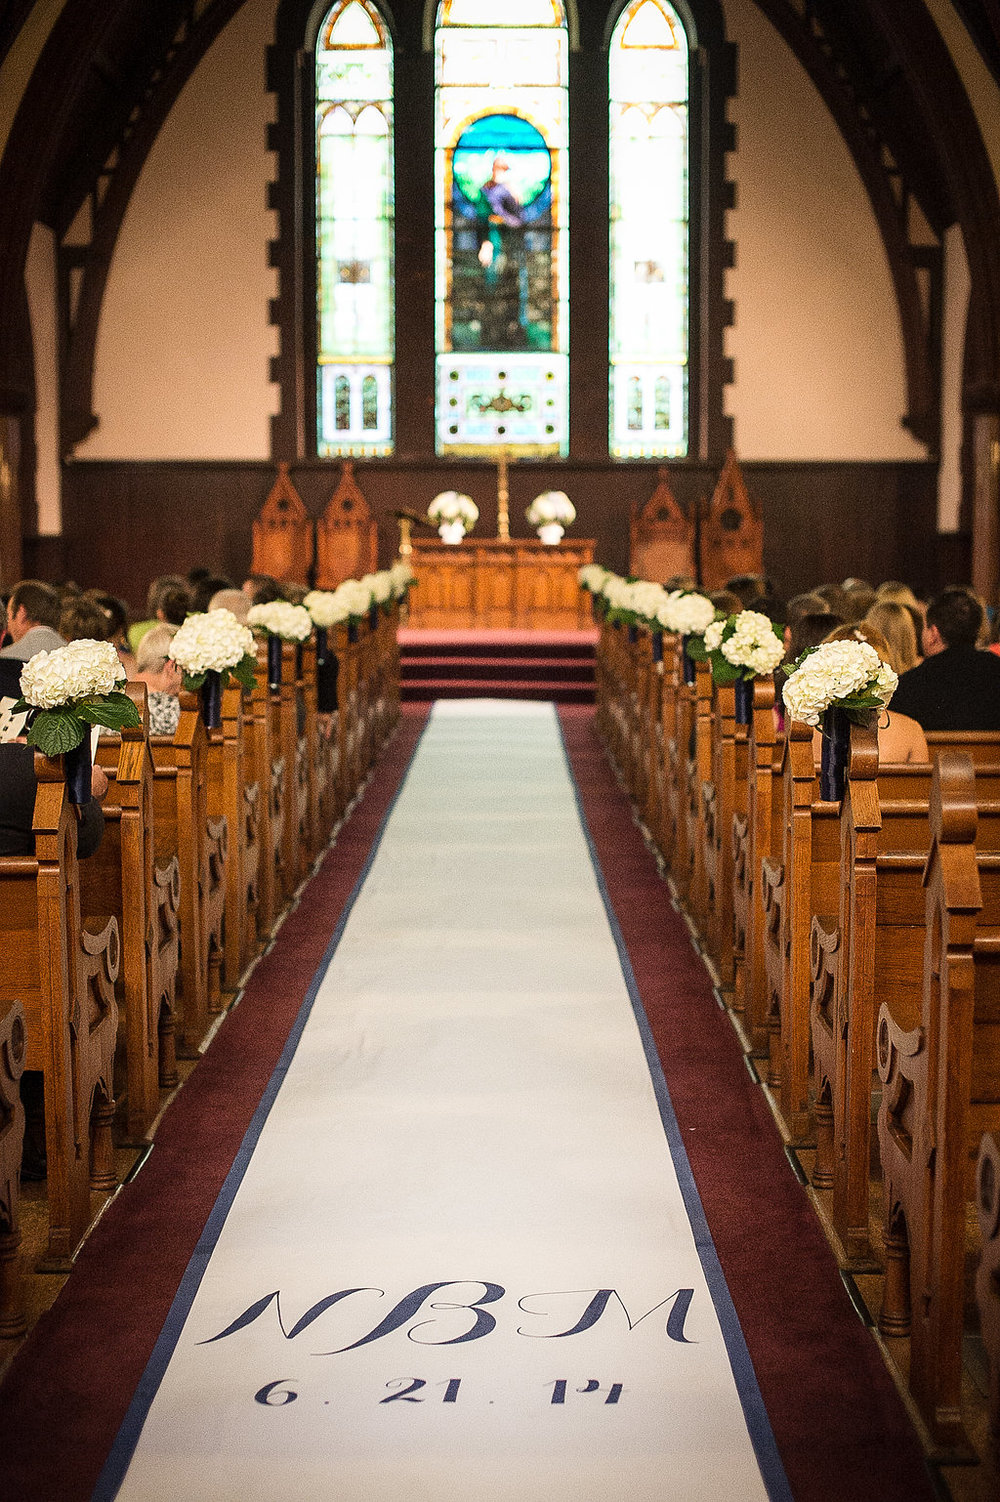 In the church we did a custom aisle runner in white with simple navy script of the couple's initials and the date, we did a navy stripe going down the sides of the aisle to keep with the theme, and mini bouquets of white hydrangeas lining the pews to create an elegant pathway for the bride.